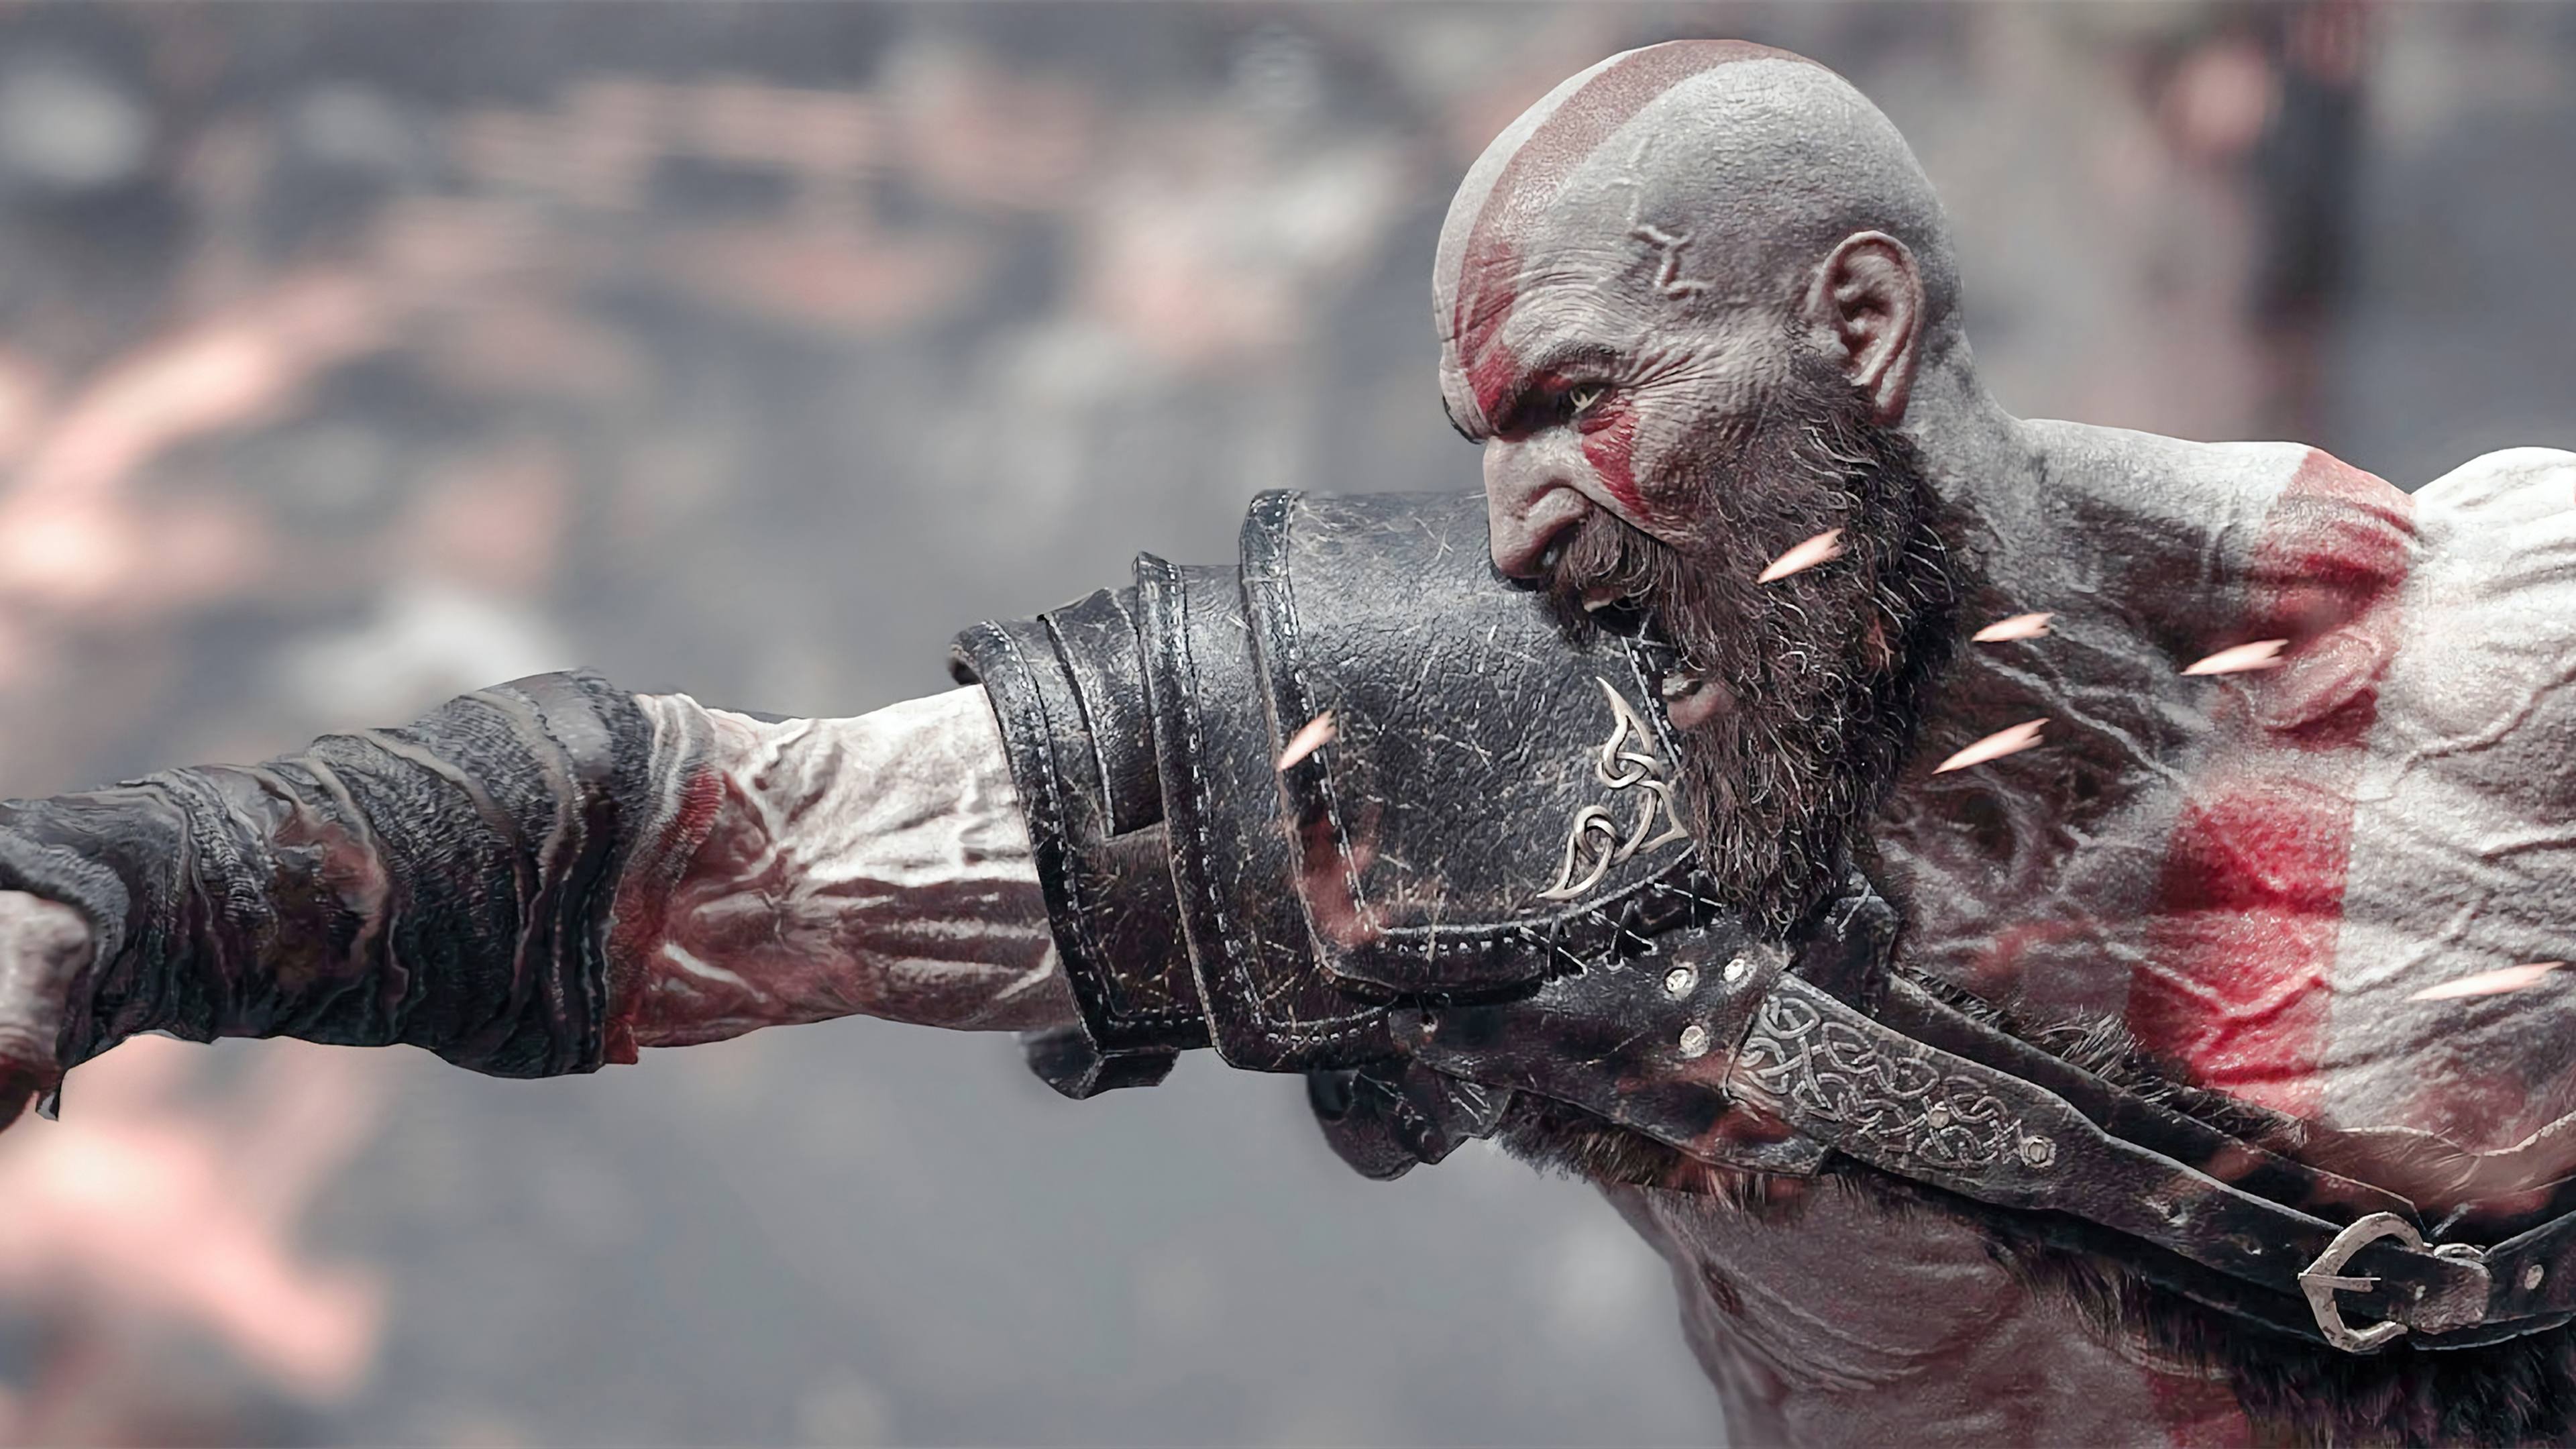 kratos digital art 1570392892 - Kratos Digital Art - ps games wallpapers, kratos wallpapers, hd-wallpapers, god of war wallpapers, god of war 4 wallpapers, games wallpapers, deviantart wallpapers, 4k-wallpapers, 2019 games wallpapers